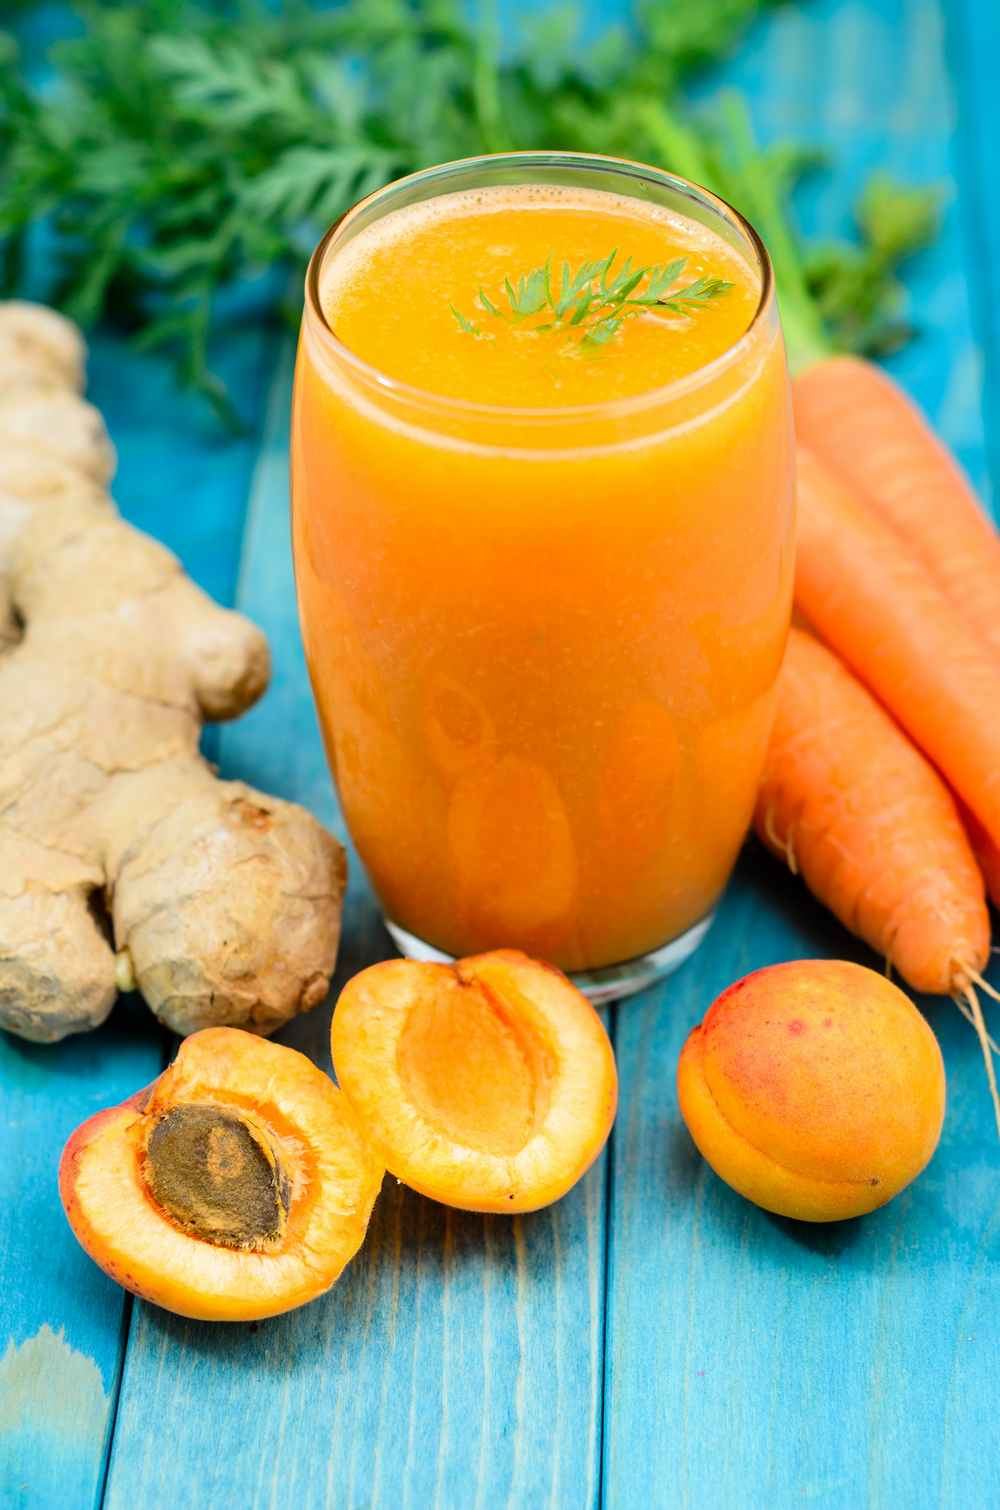 juice fasting recipe - thenaturalhealthdictionary.com - glass-of-apricot-carrot-juice-on-blue-wooden-table-1150682